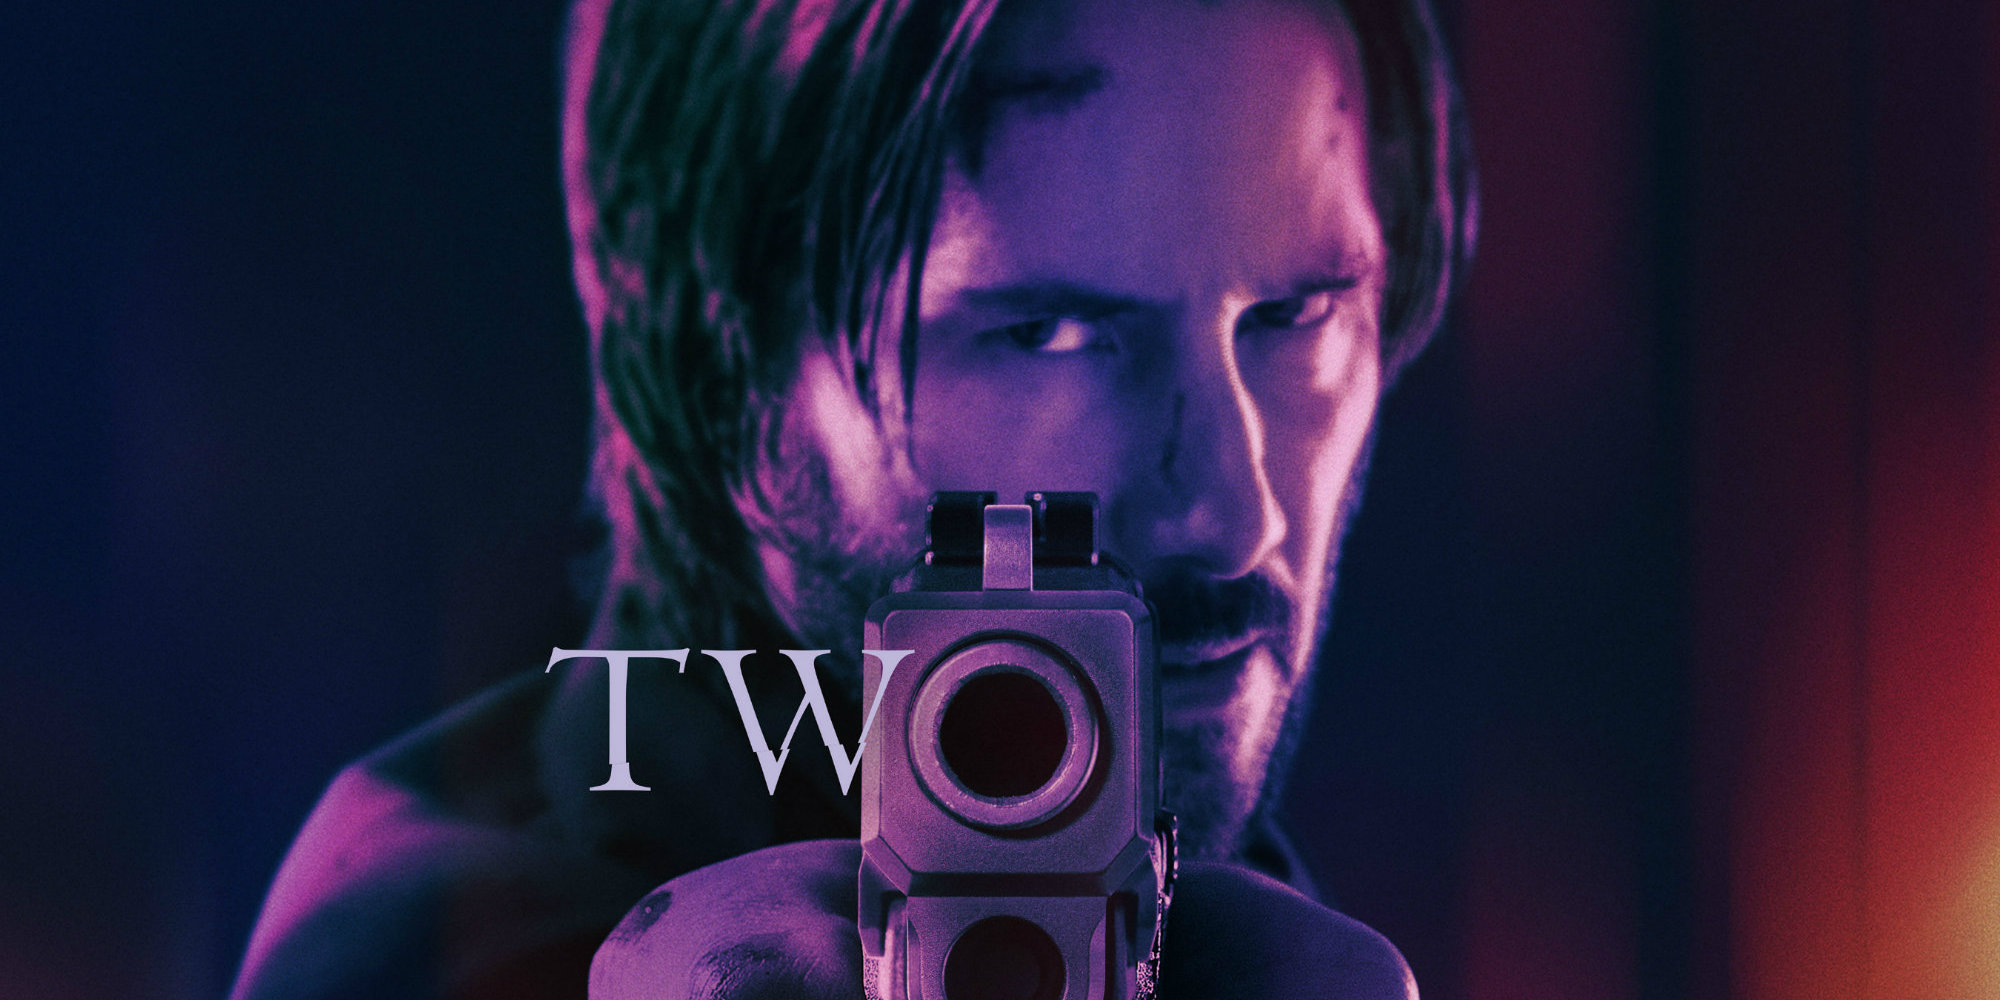 John Wick 2 poster - Reload (cropped)